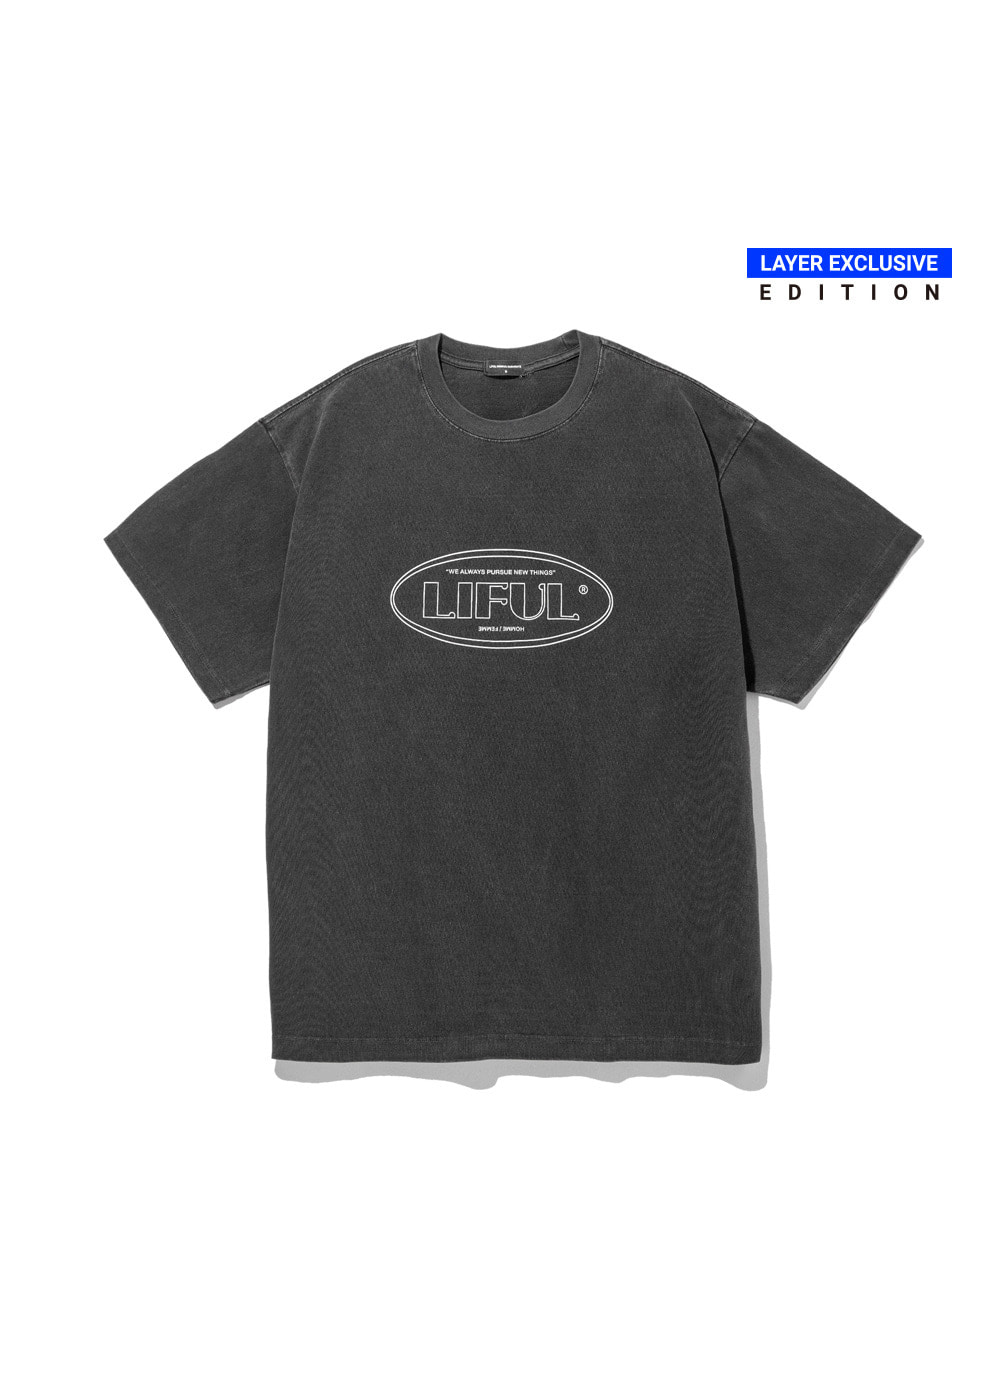 P-DYED LINE OVAL LOGO TEE black